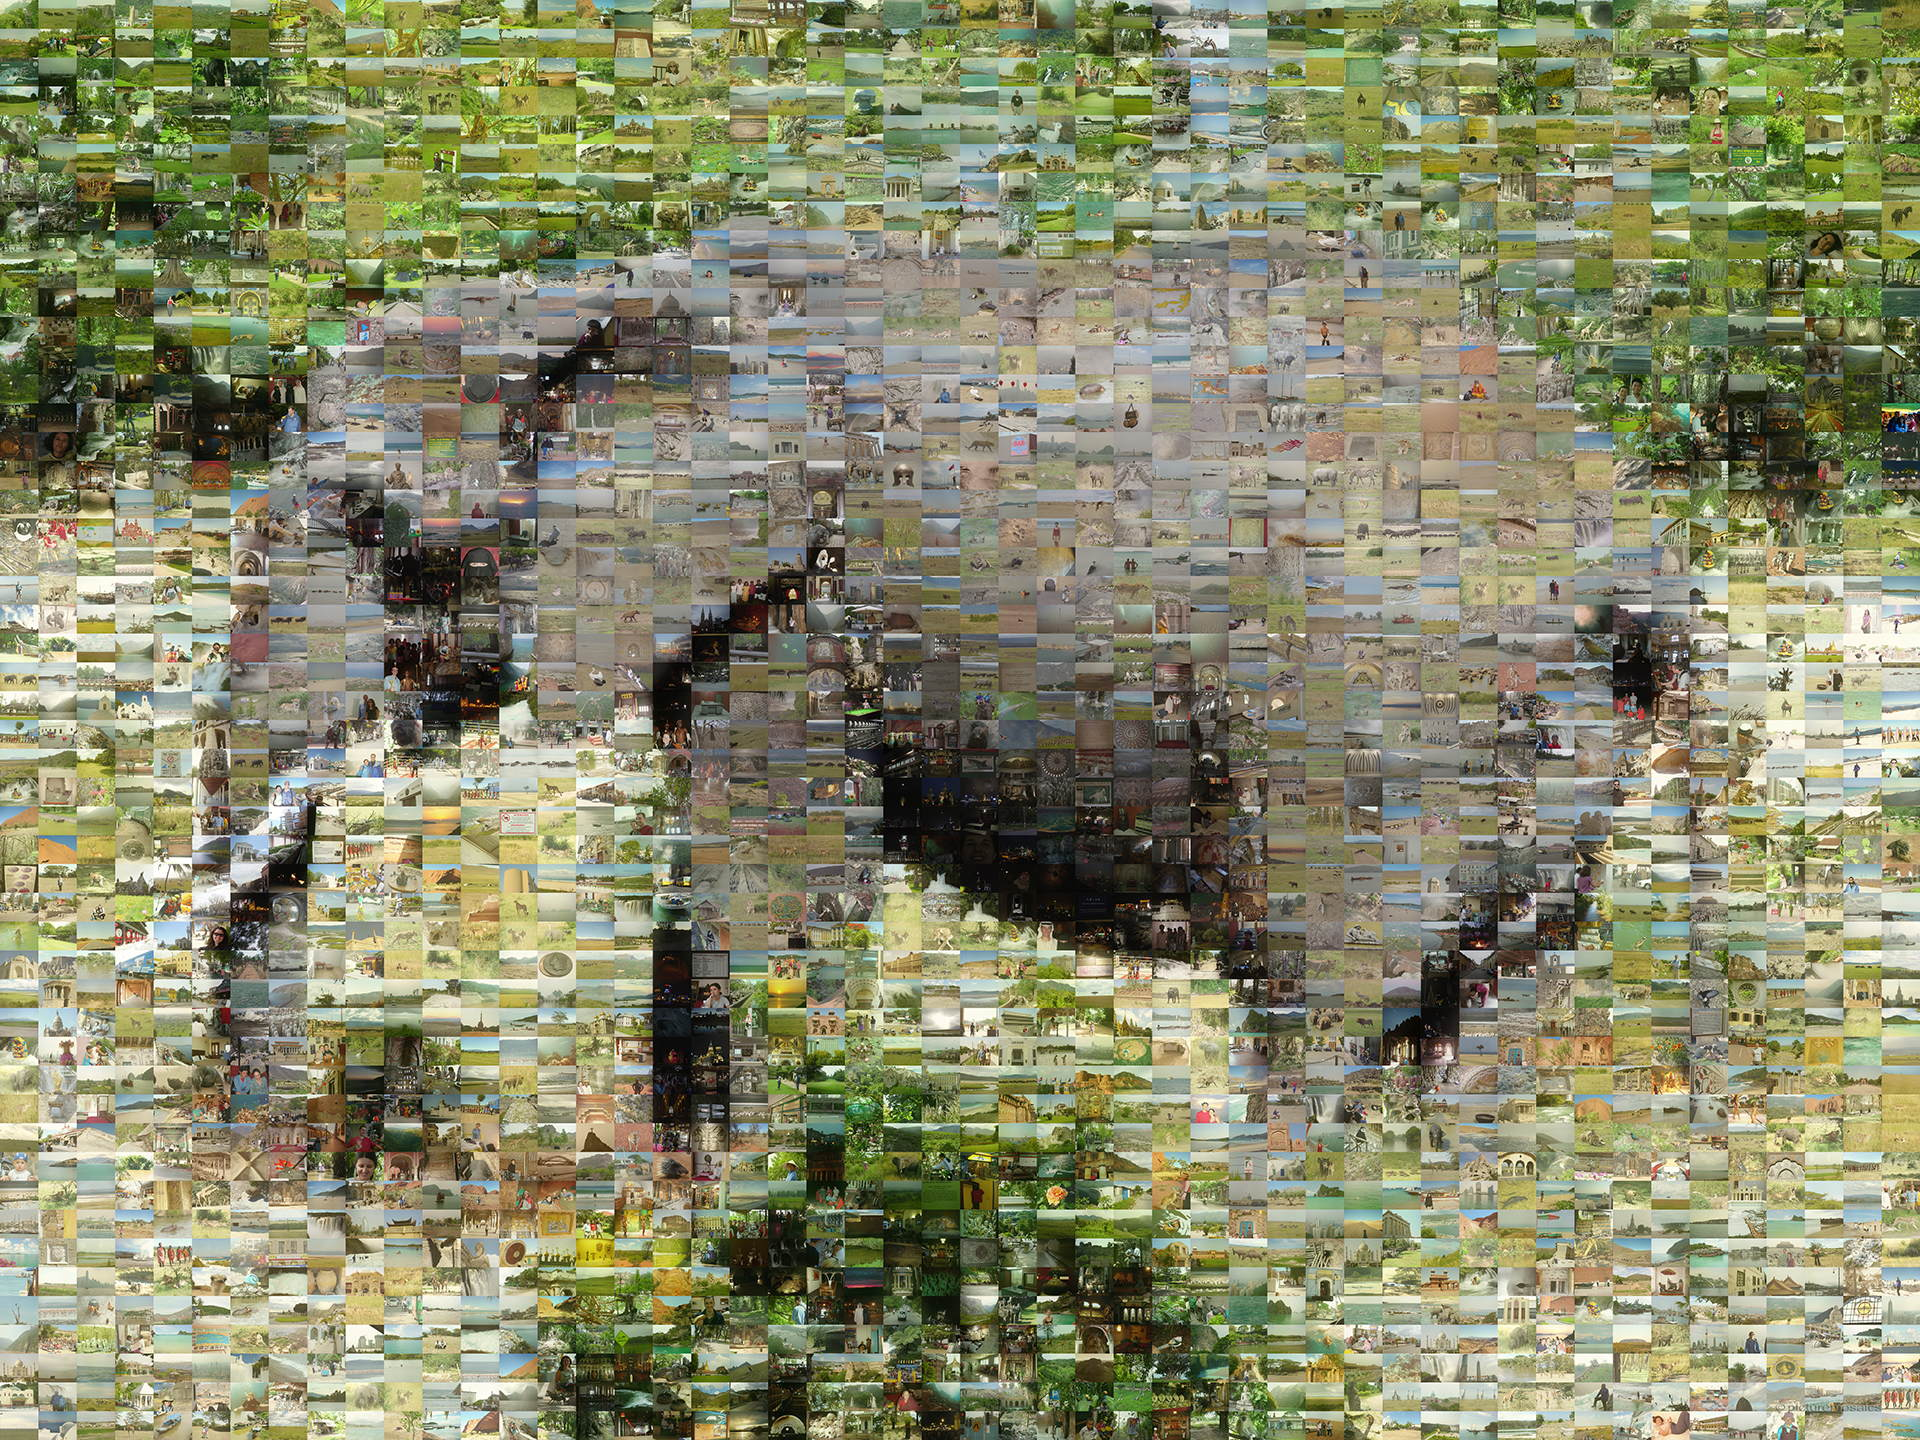 photo mosaic an image of an elephant using 2500 unique photos